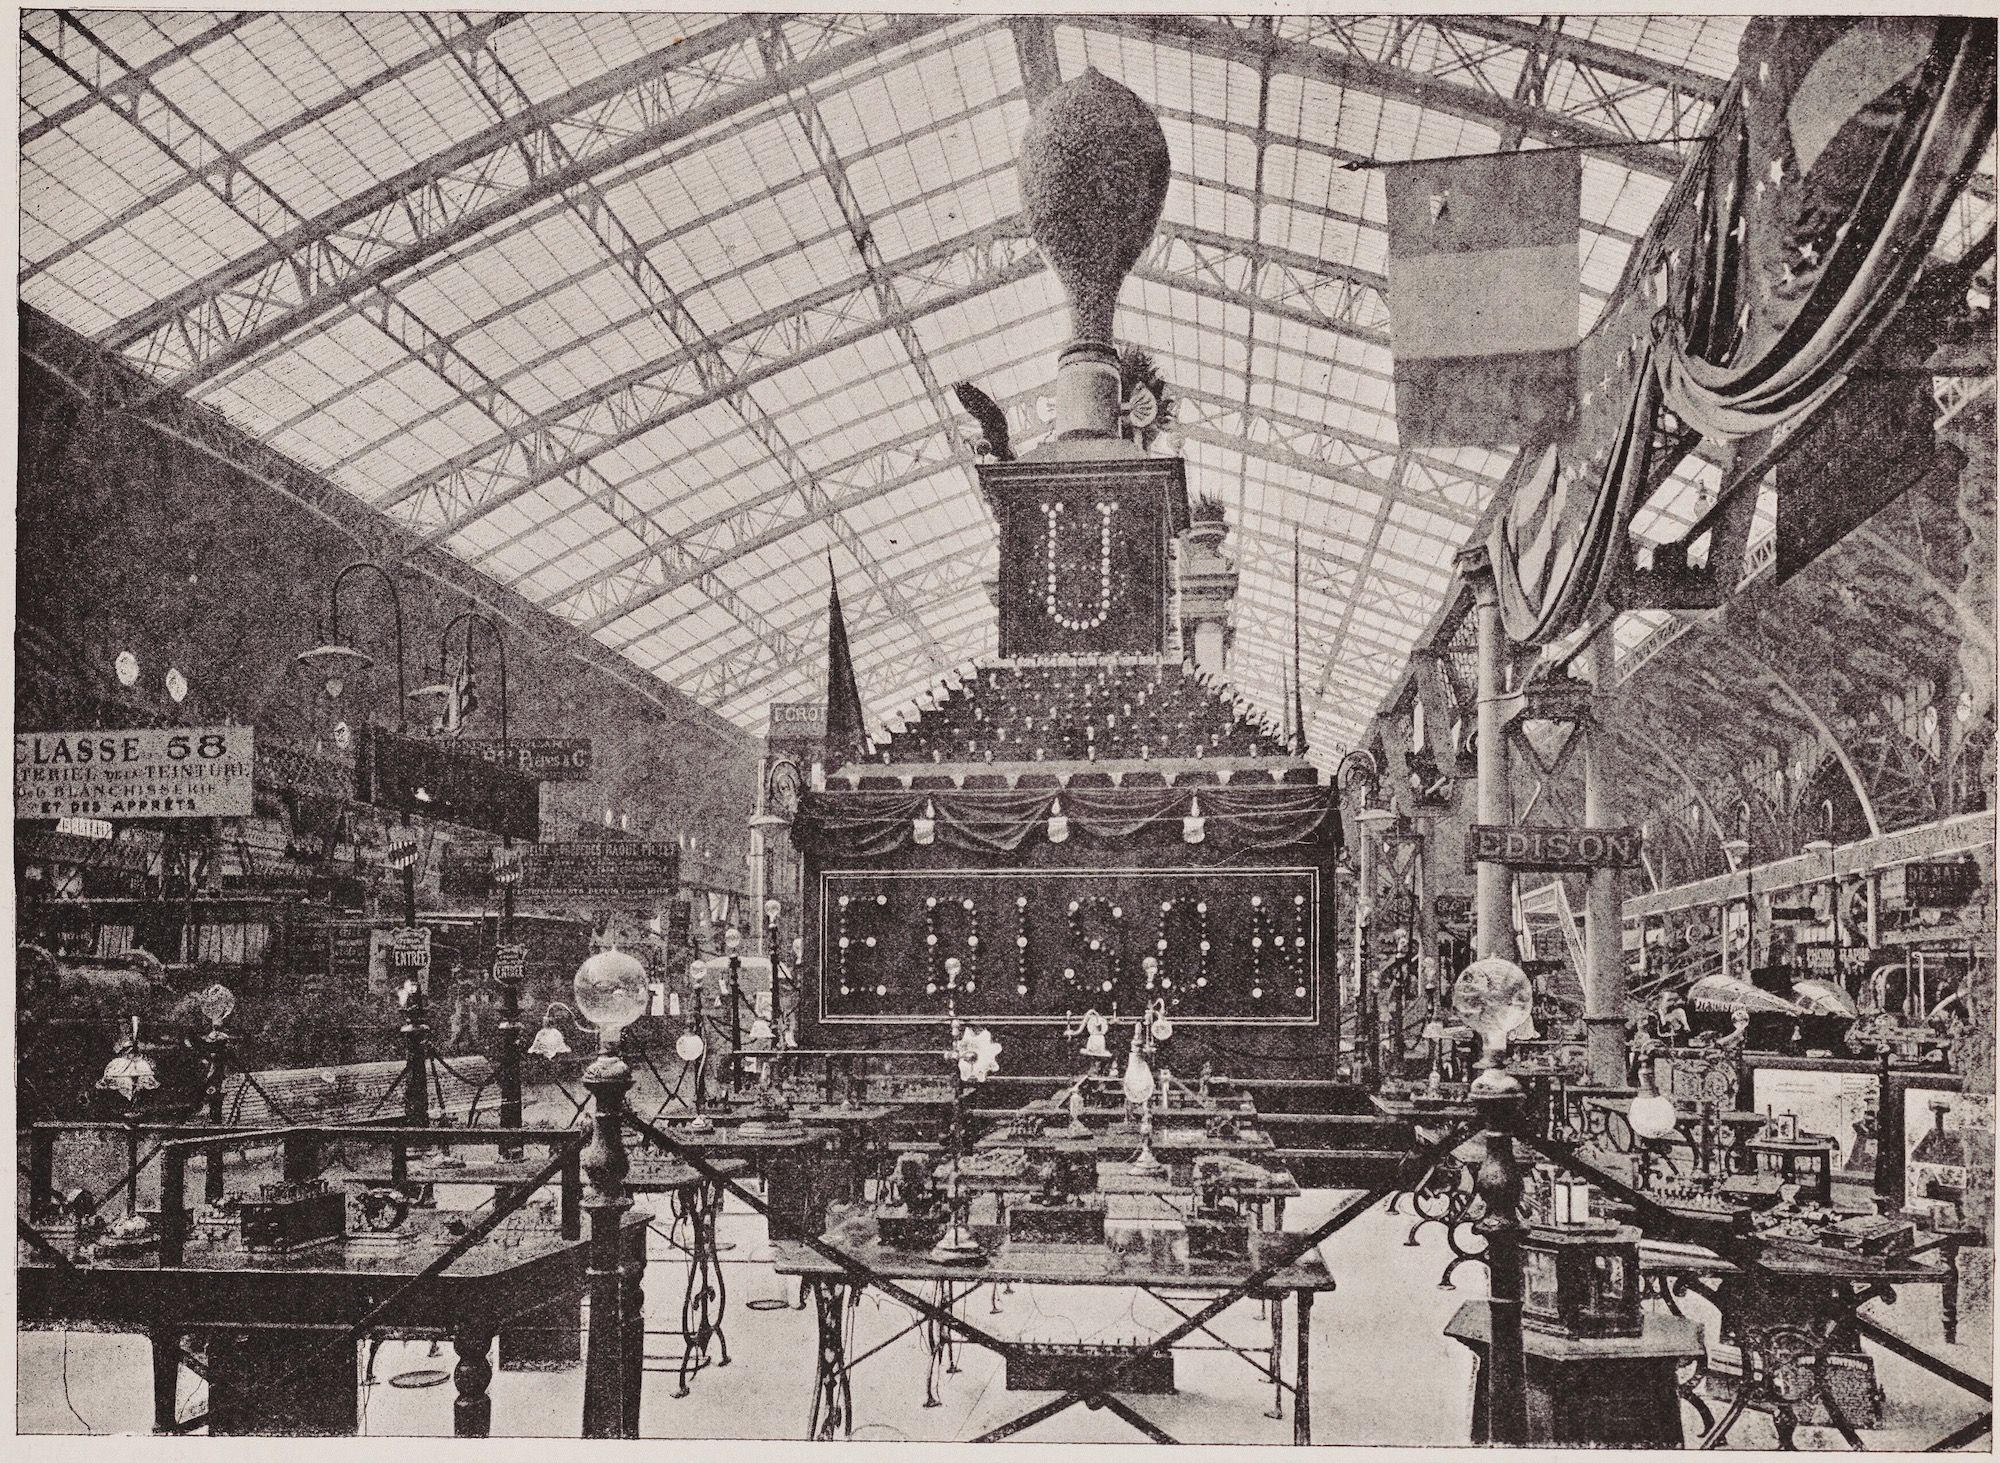 Thomas Edison Paris Exposition Display in 1889